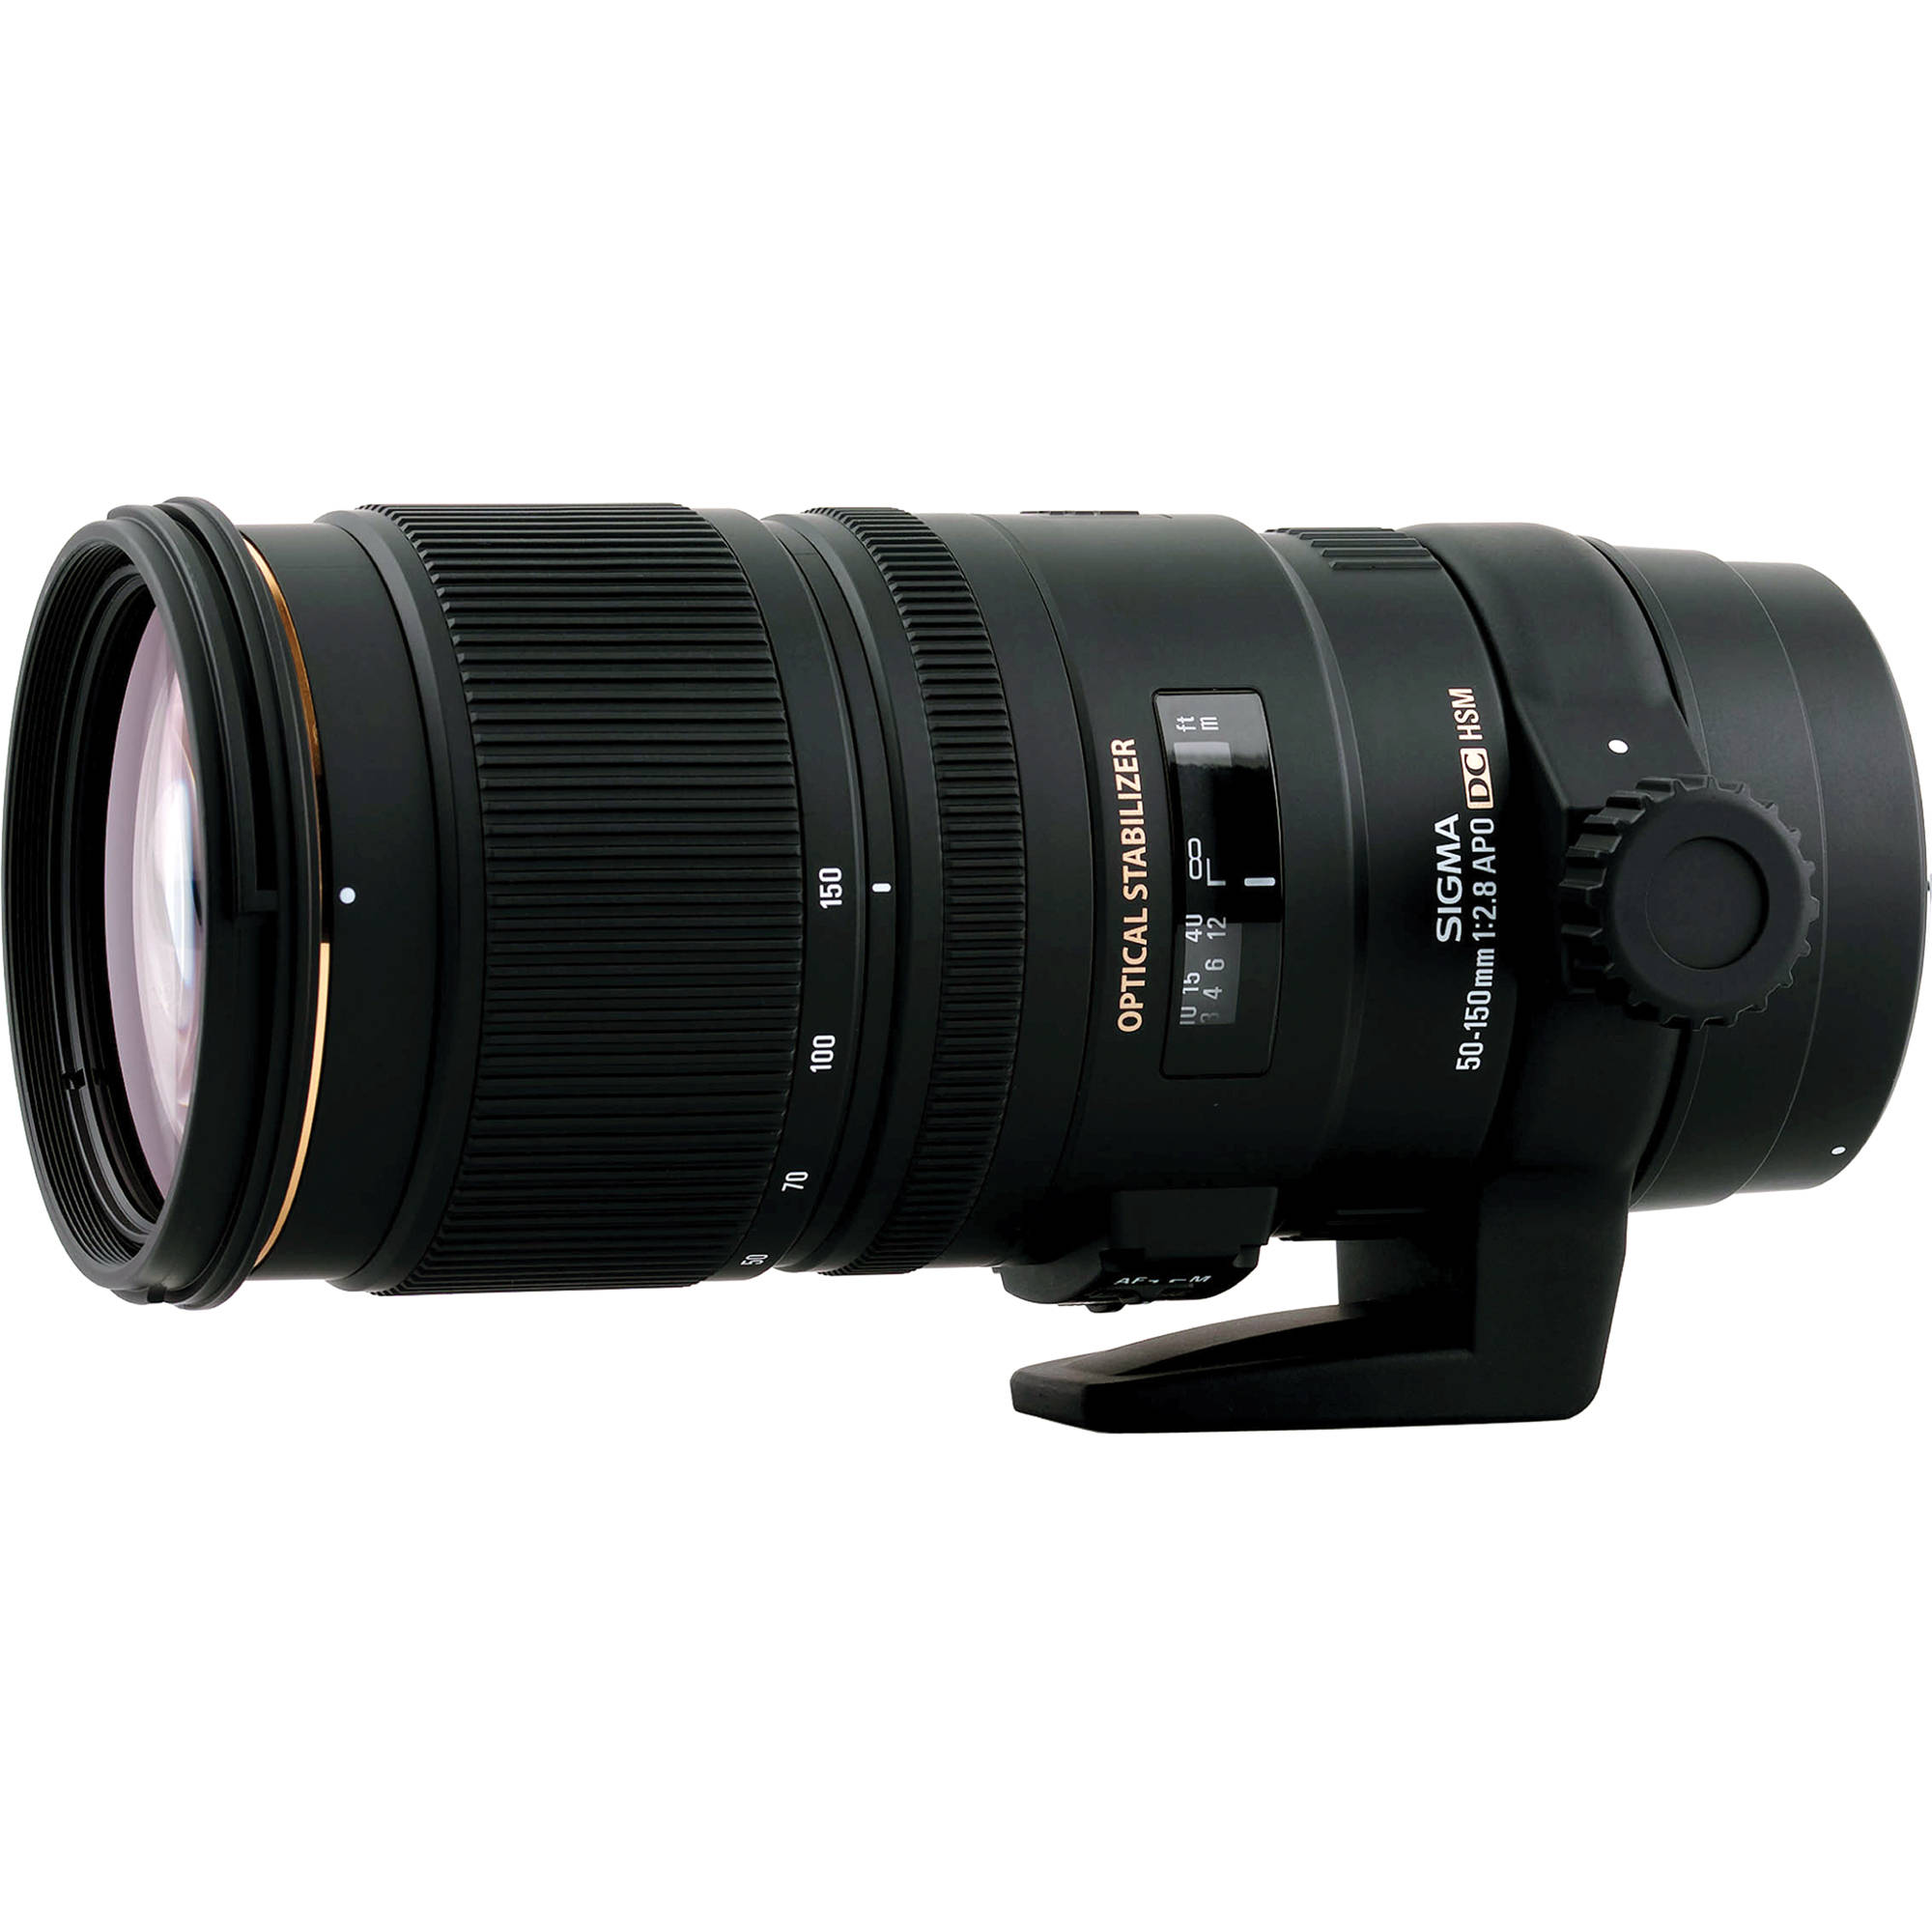 sigma 50 150mm f 2 8 ex dc os hsm apo lens for nikon f 692 306. Black Bedroom Furniture Sets. Home Design Ideas